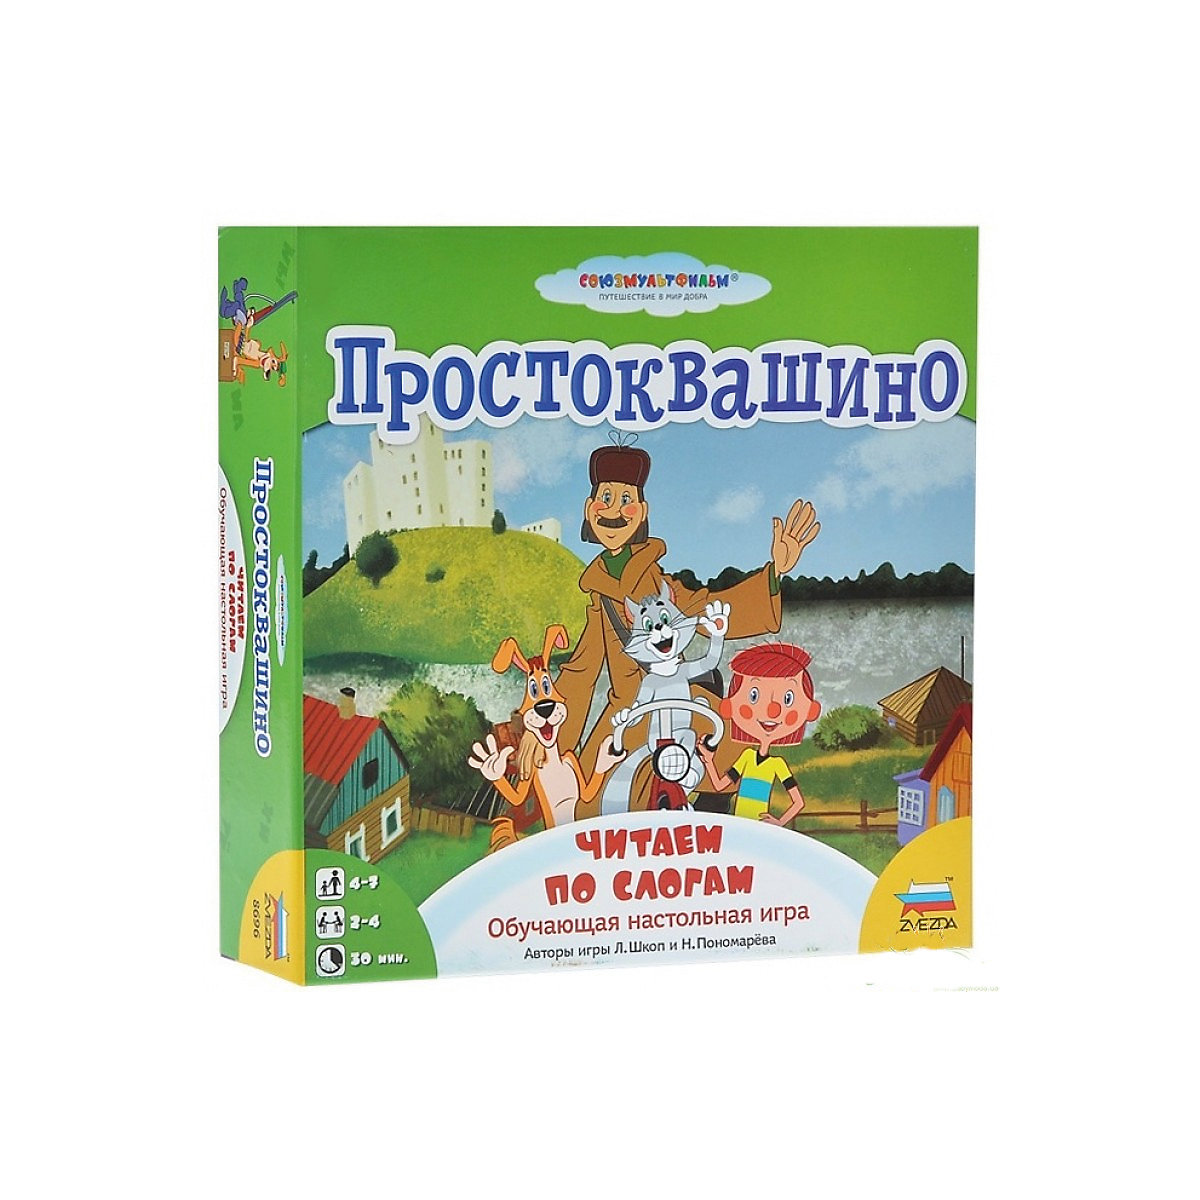 Zvezda Party Games 8988598 board game fine motor skills for the company developing play girl boy friends цены онлайн